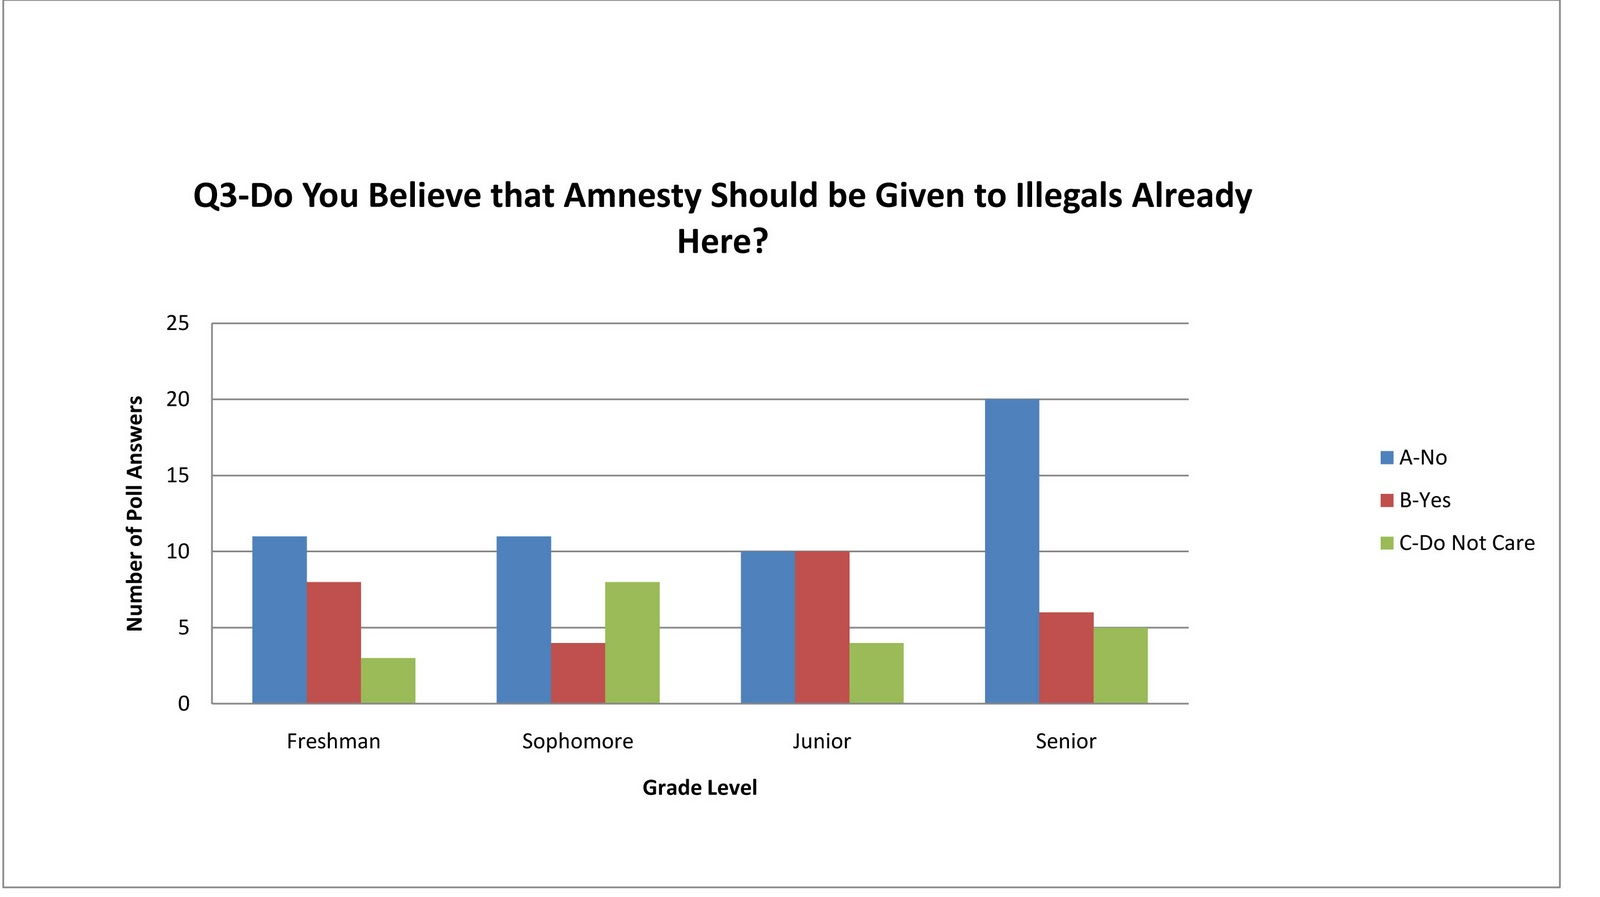 aaaillegal immigrants should be given amnesty Immigration and amnesty in usa has a long history, and grants citizenship to illegal immigrants.